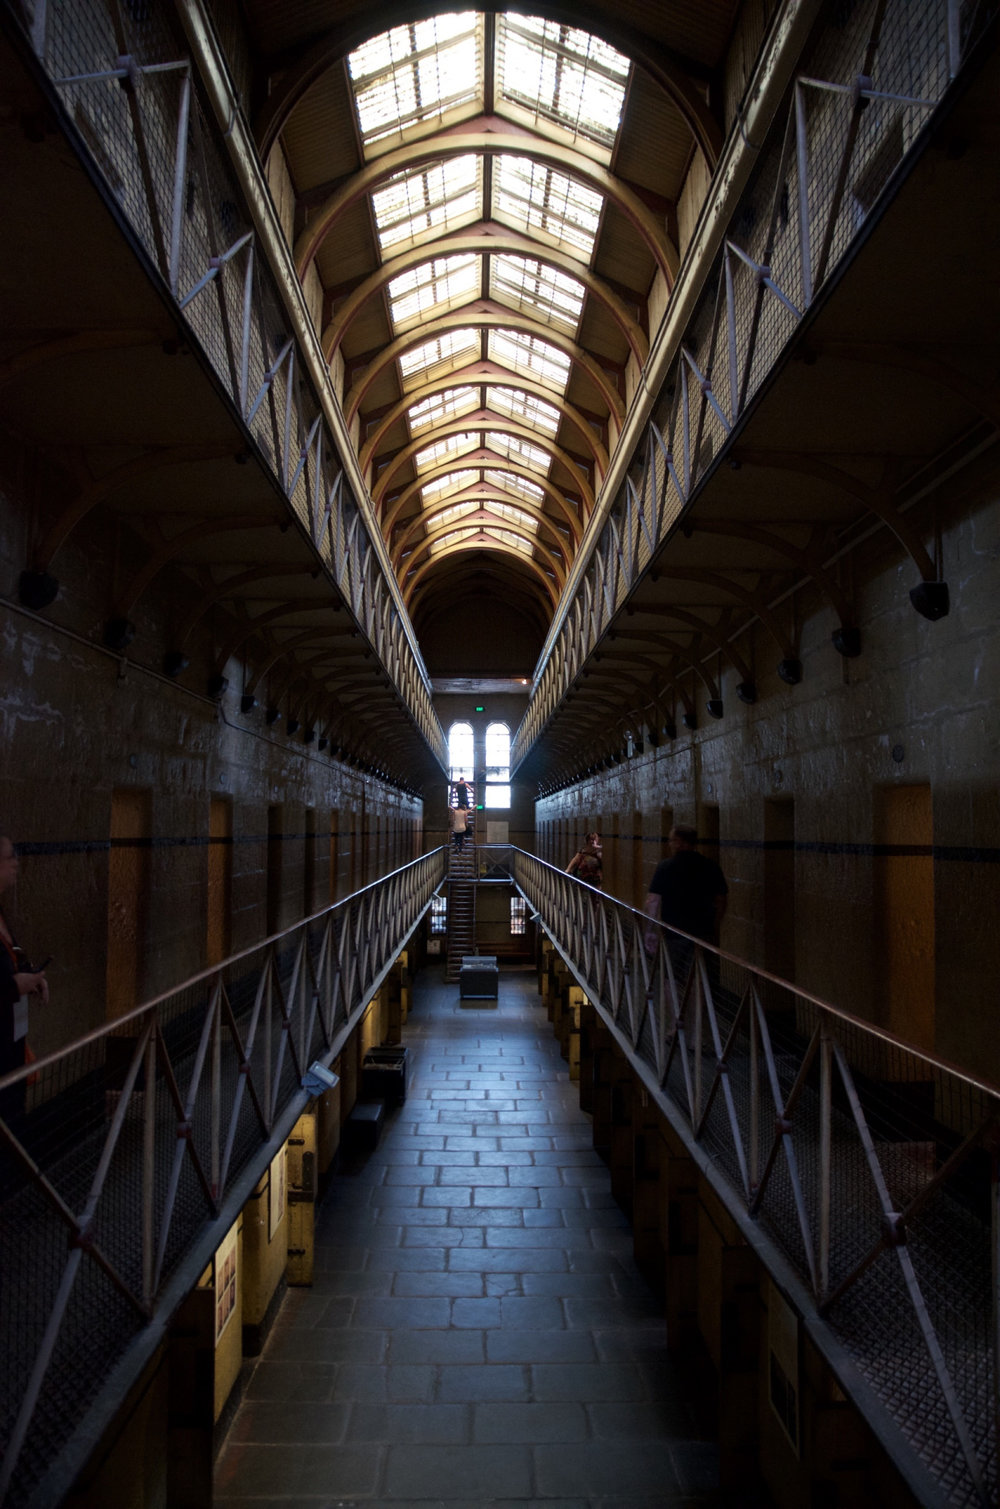 The Old Melbourne Gaol, Melbourne, Australia.